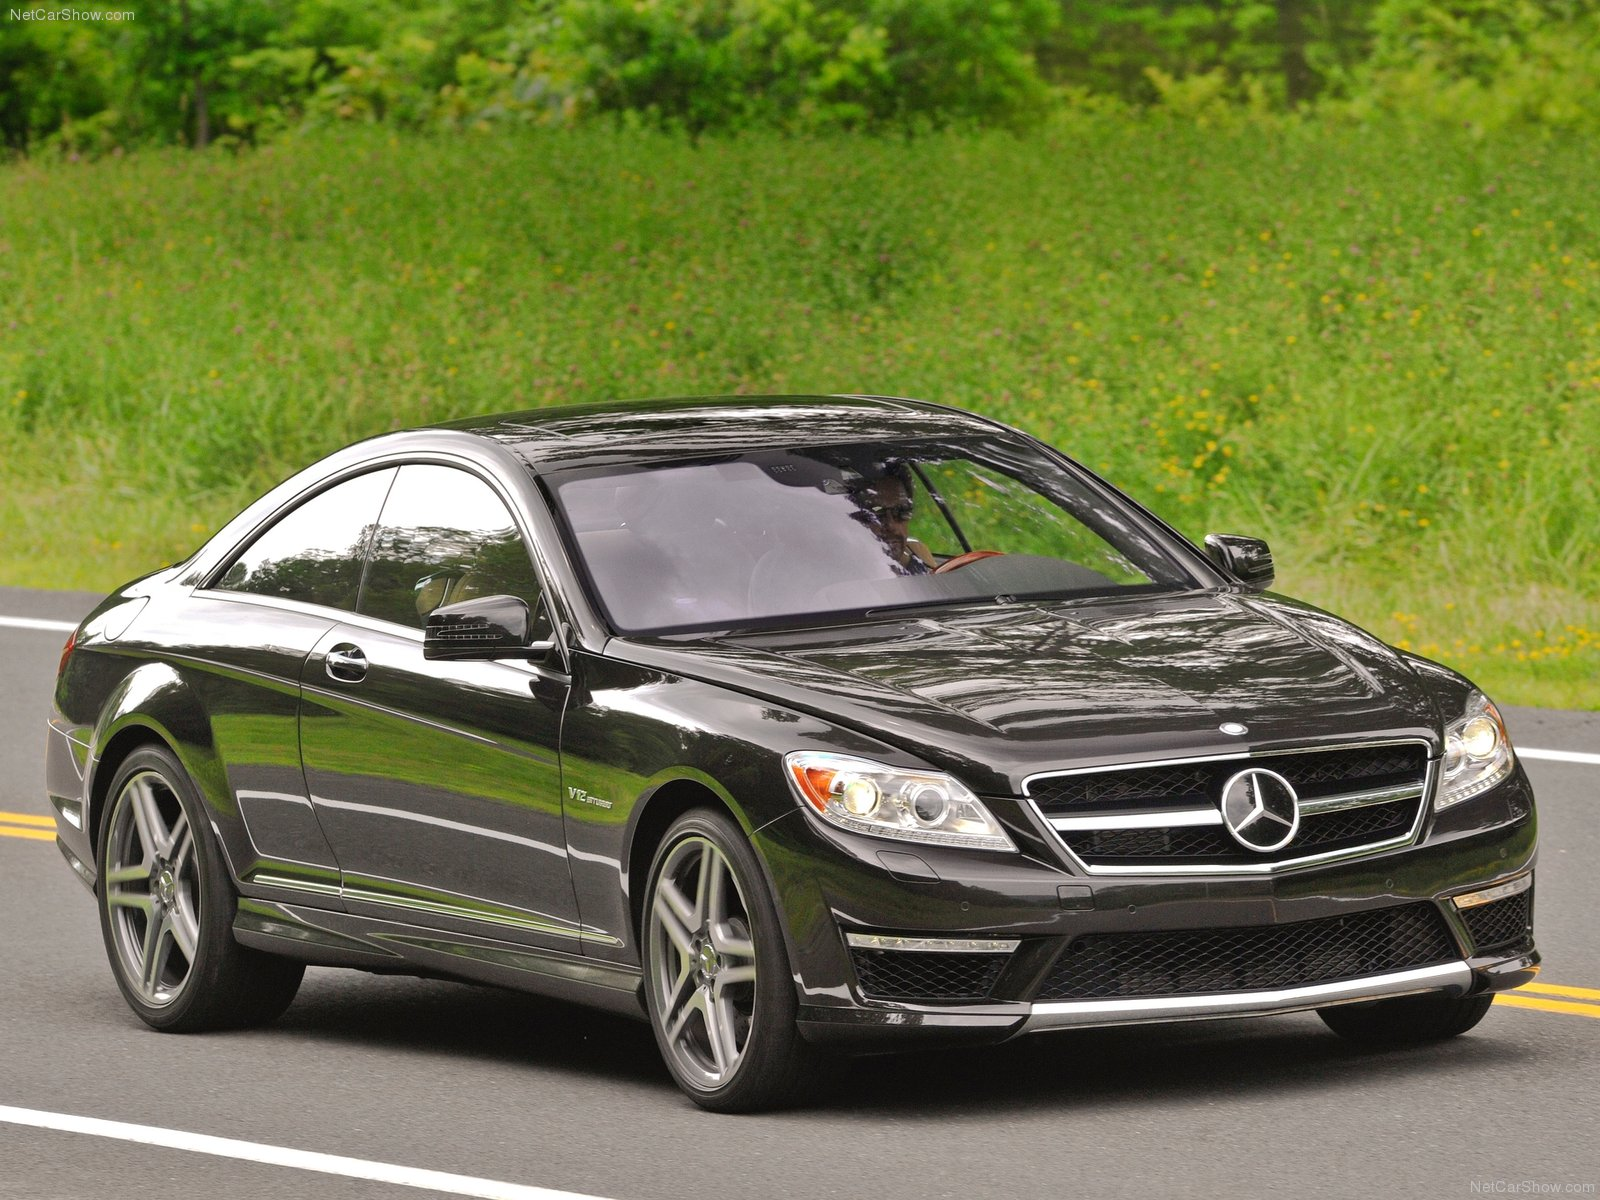 Mercedes benz cl65 amg photos photogallery with 24 pics for Mercedes benz cl65